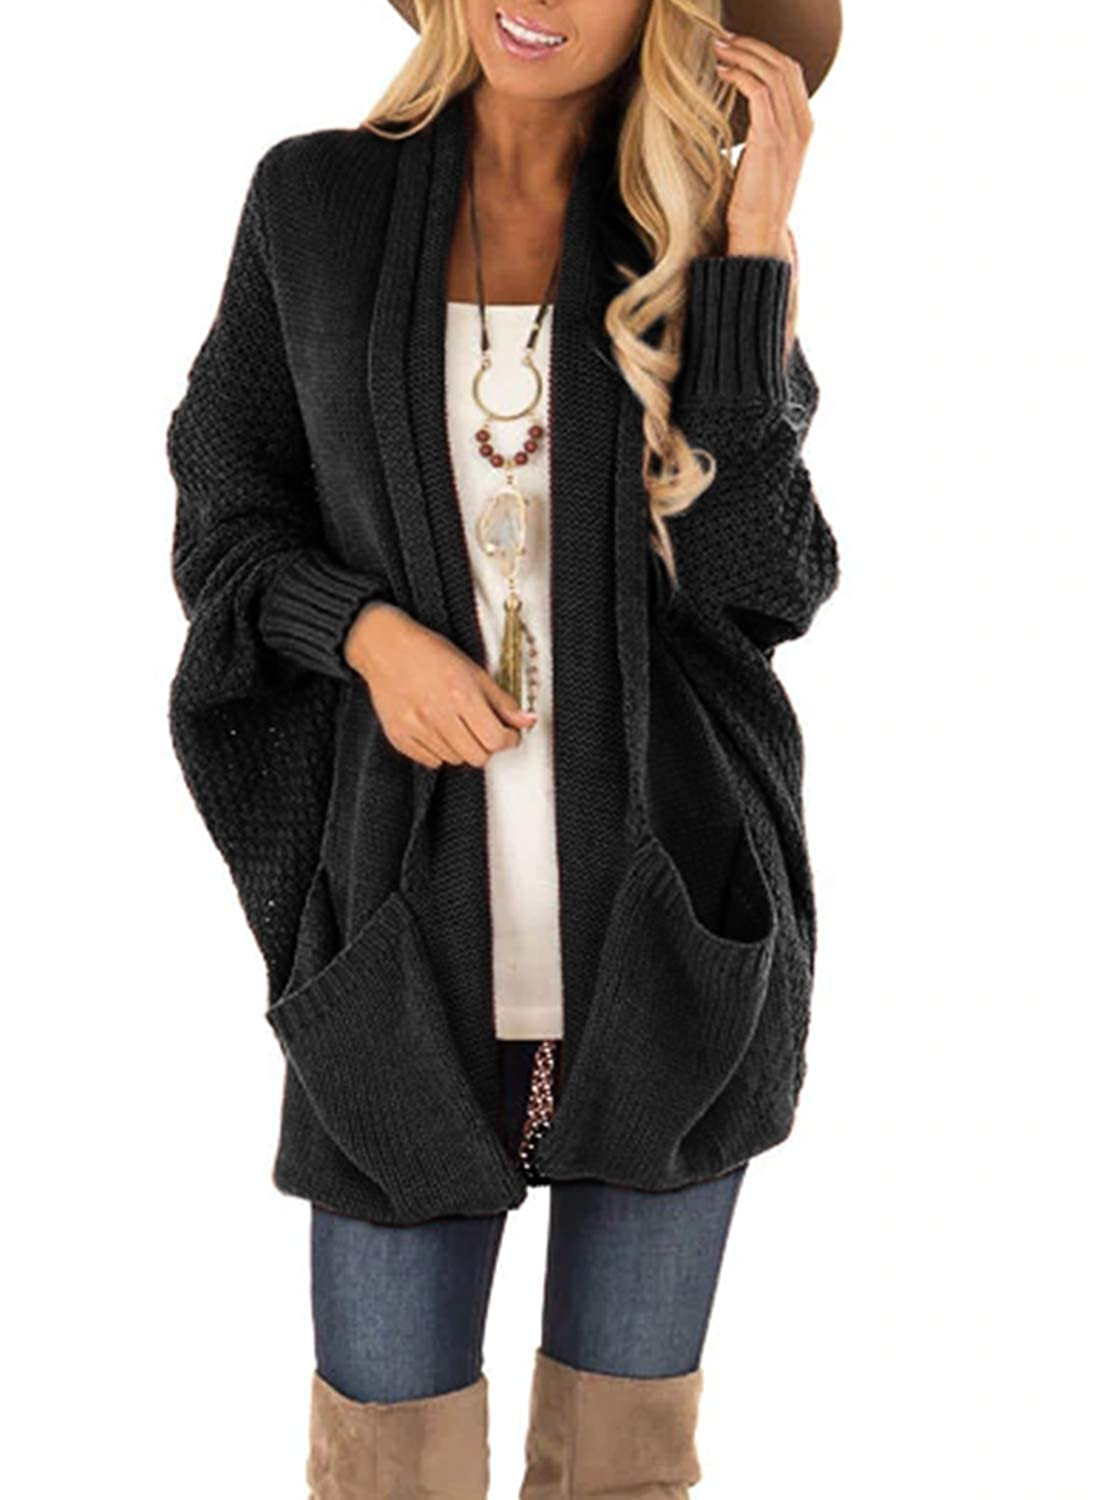 BLENCOT Women Long Cardigan Chunky Knitted Coat Batwing Sleeve Sweater with Square Pockets